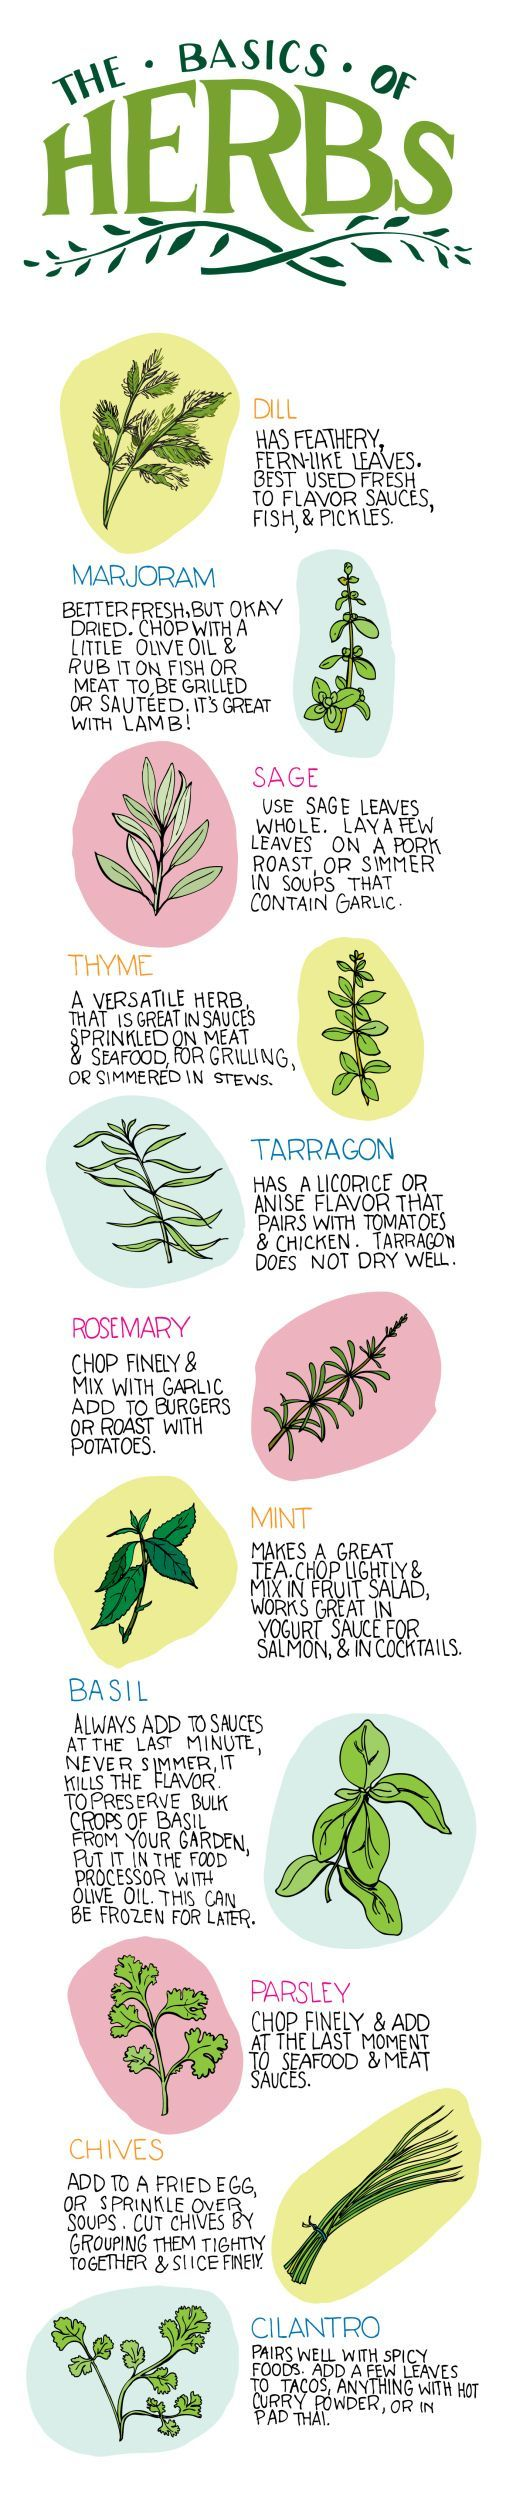 The Basics of Herbs (Infographic)